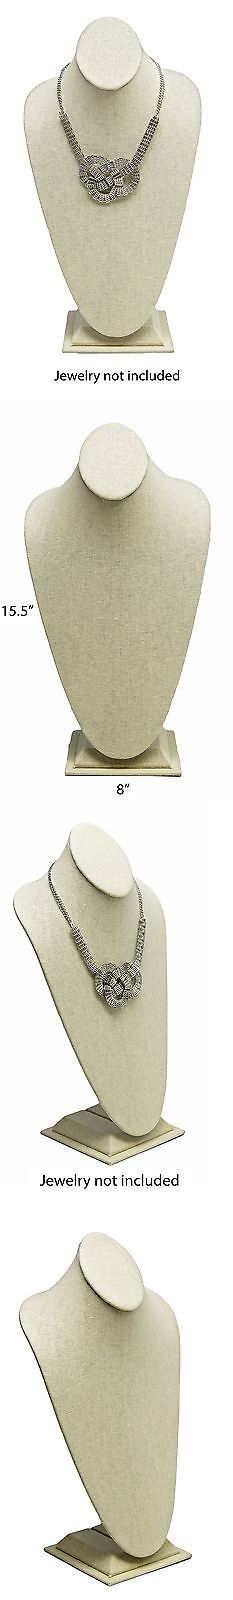 Multi-Purpose 168165: Novel Box Beige Linen Necklace Jewelry Display Bust Stand X-Large (15.5X8... New -> BUY IT NOW ONLY: $32.11 on eBay!